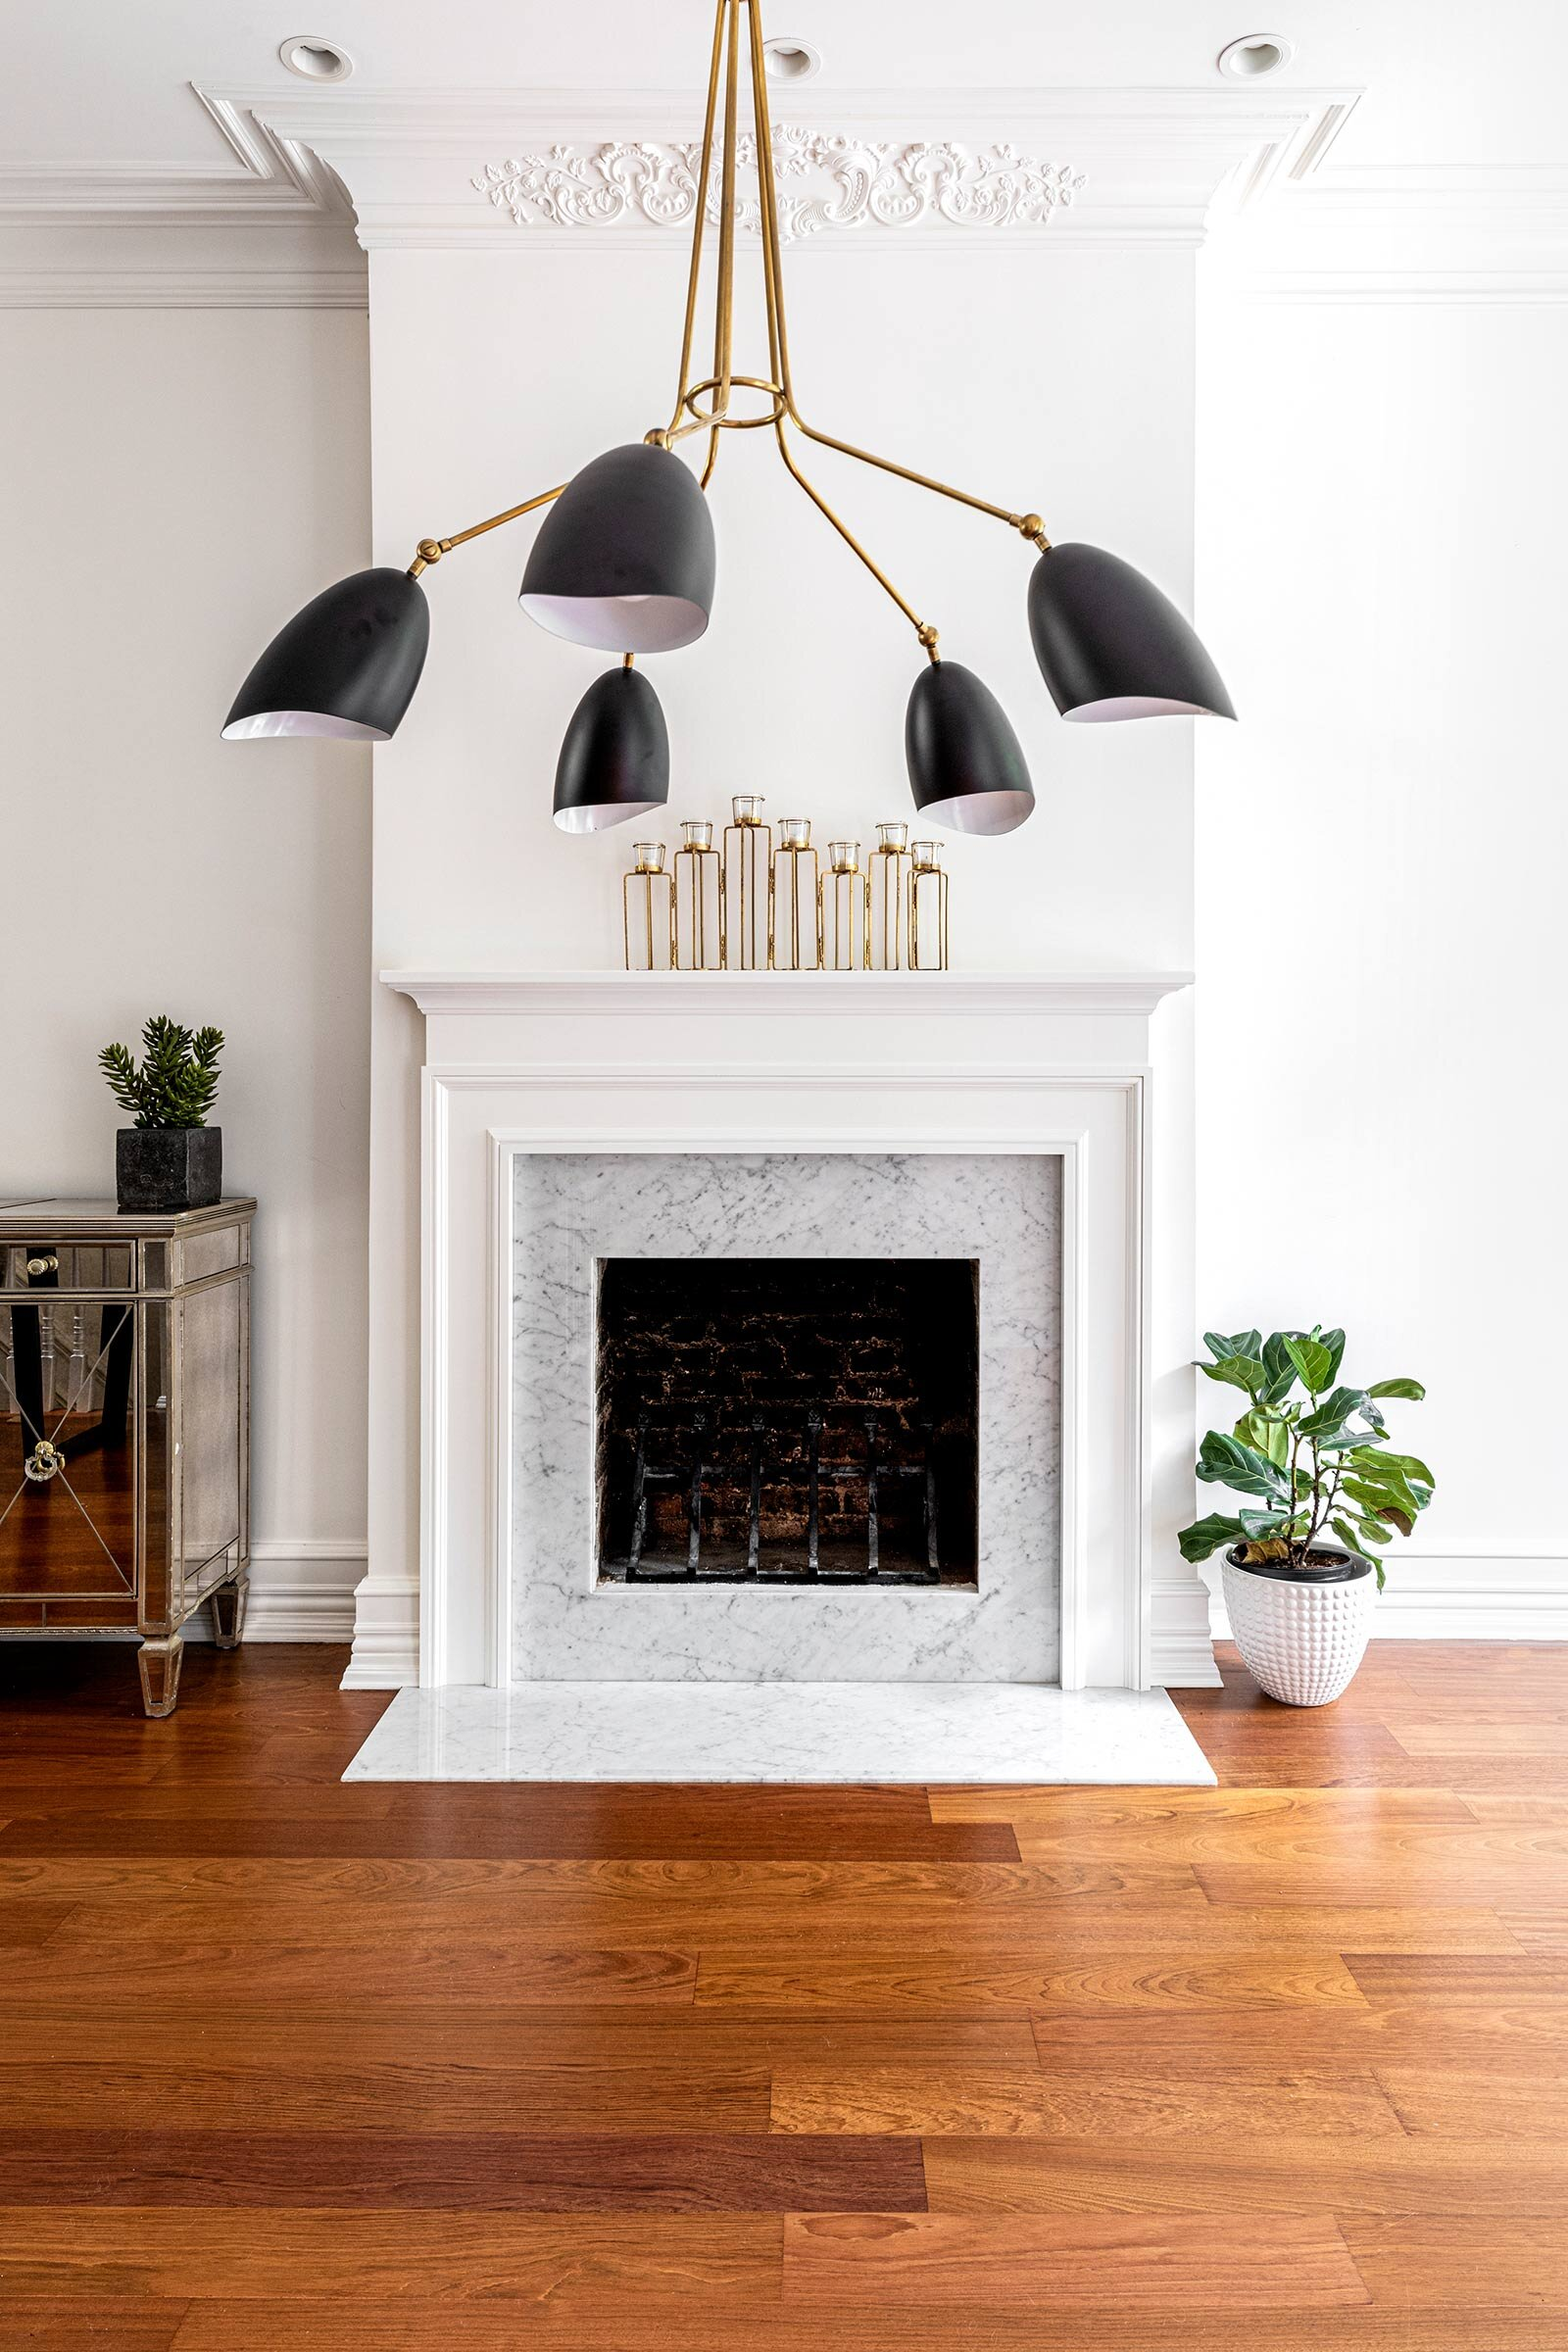 thompson-home-renovations-contractor-fireplace-townhouse.jpg